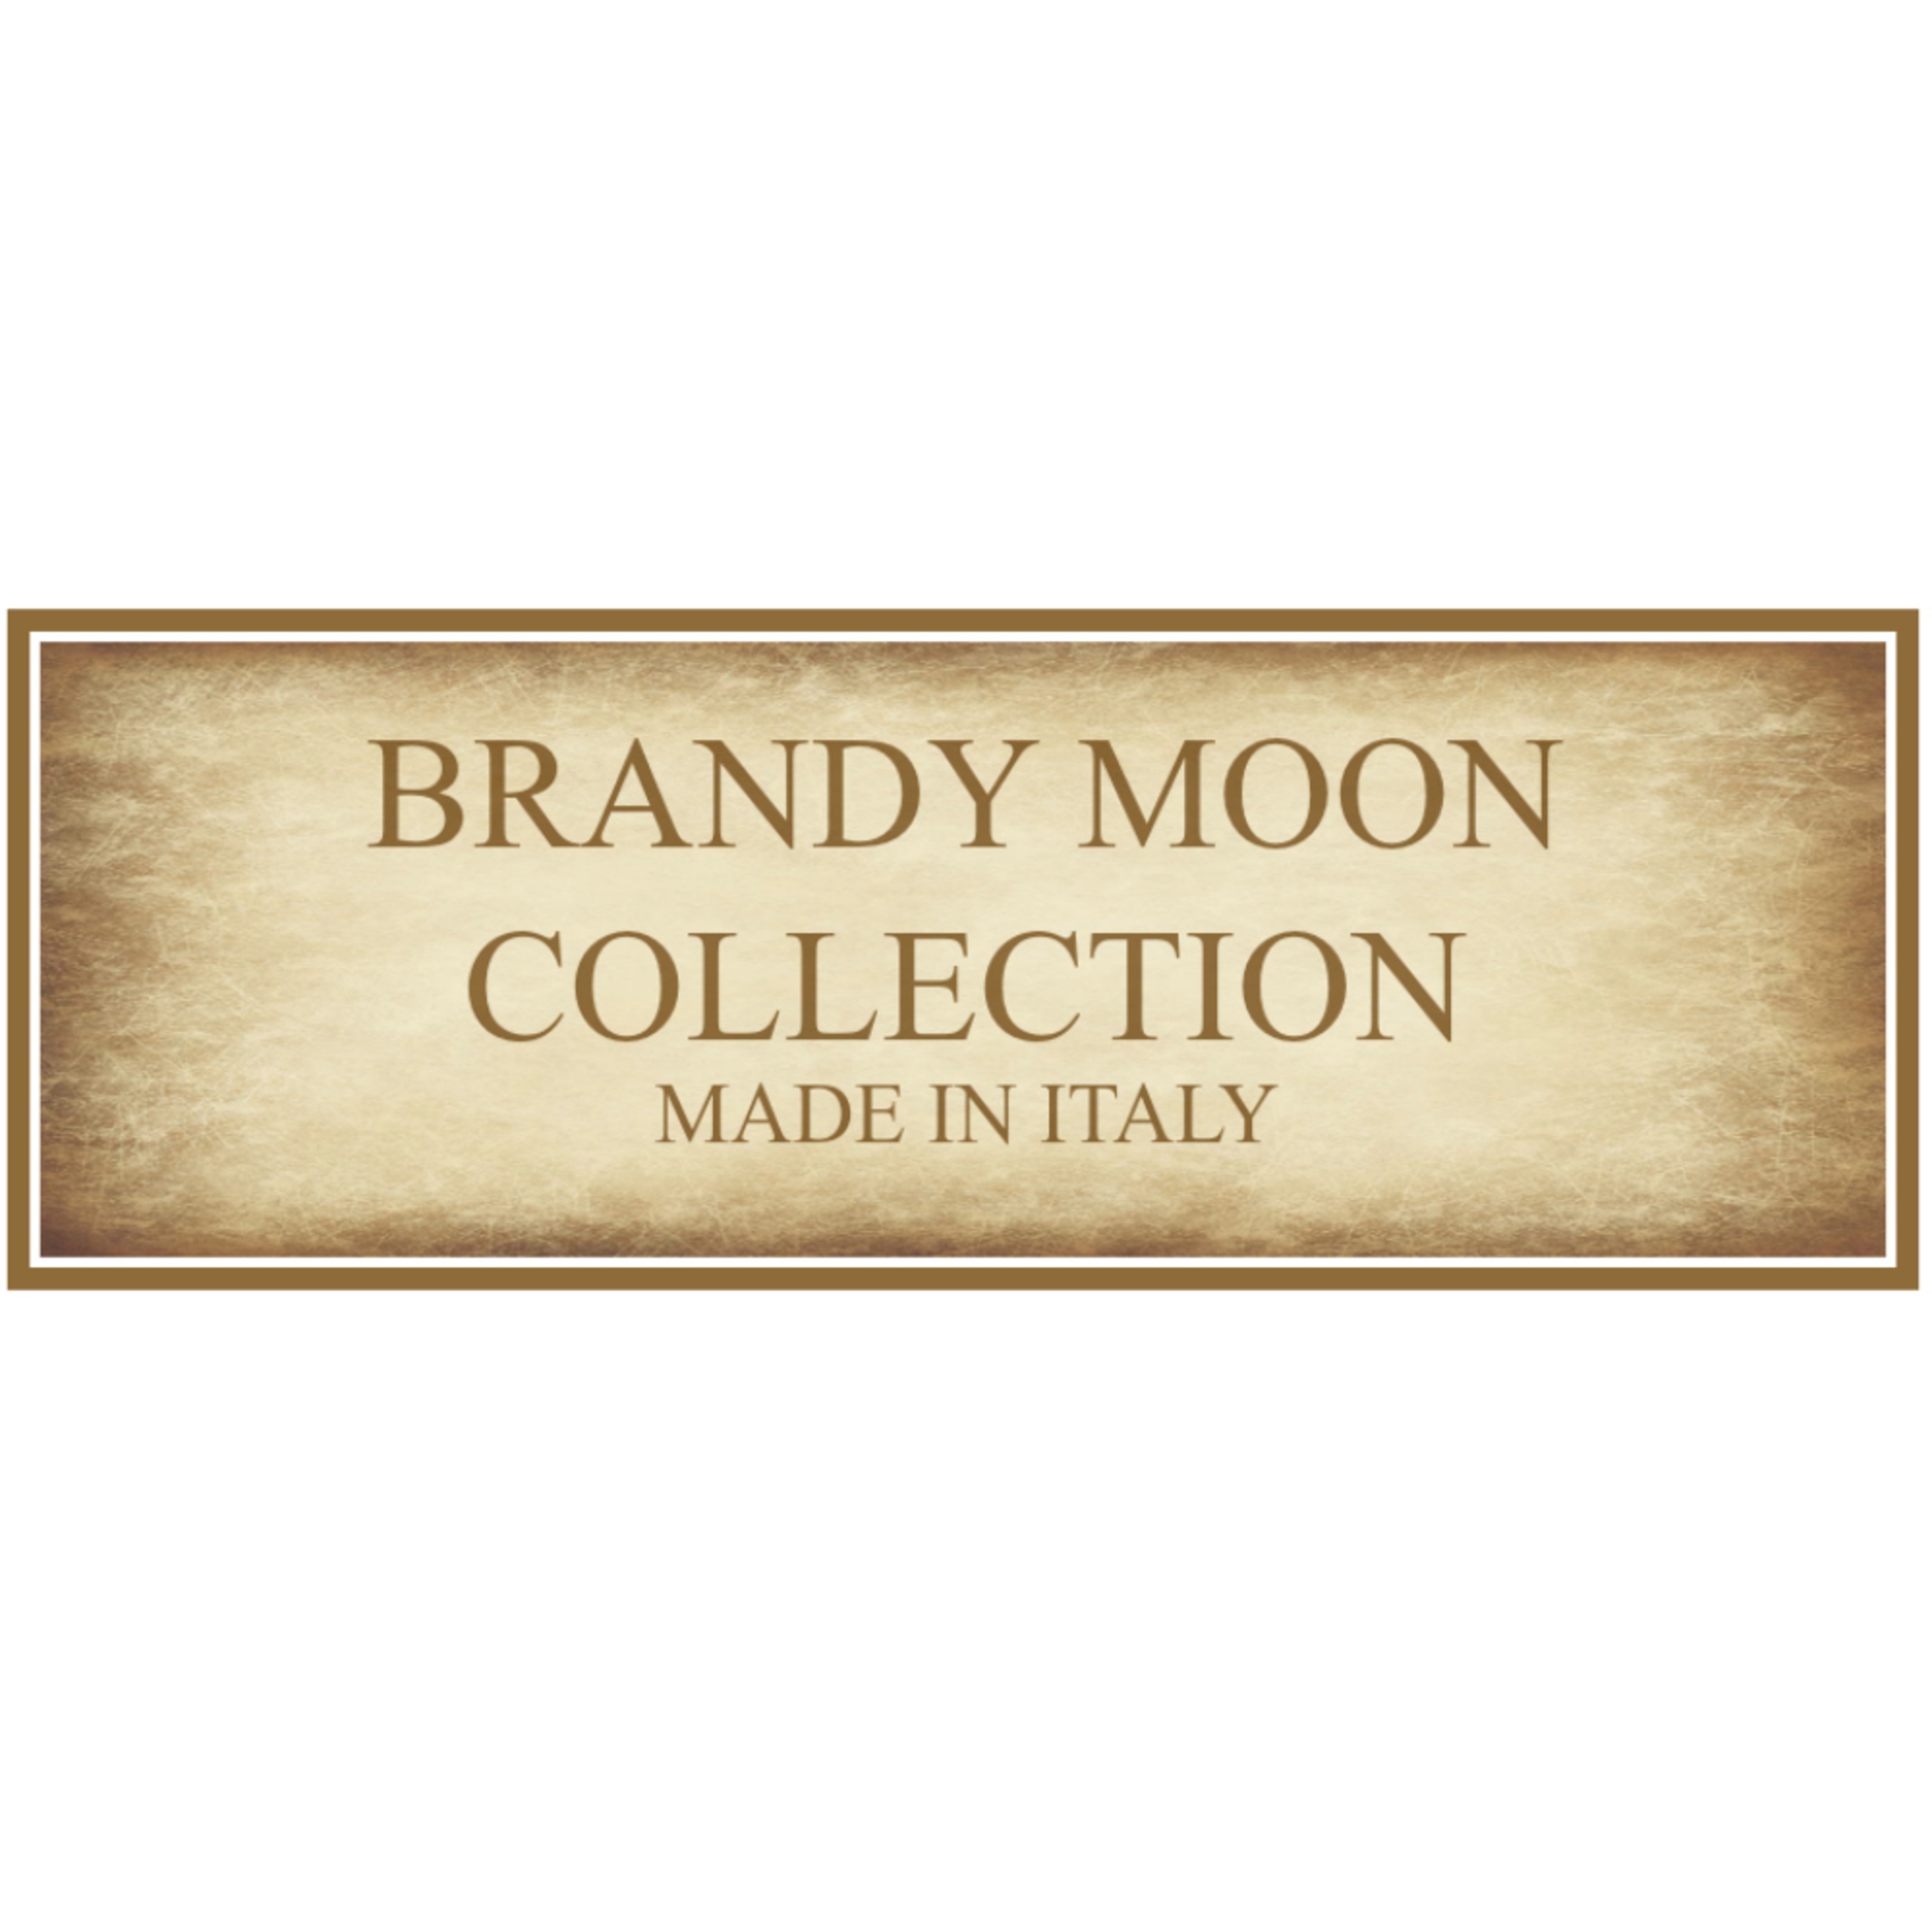 brandy moon collection- company logo